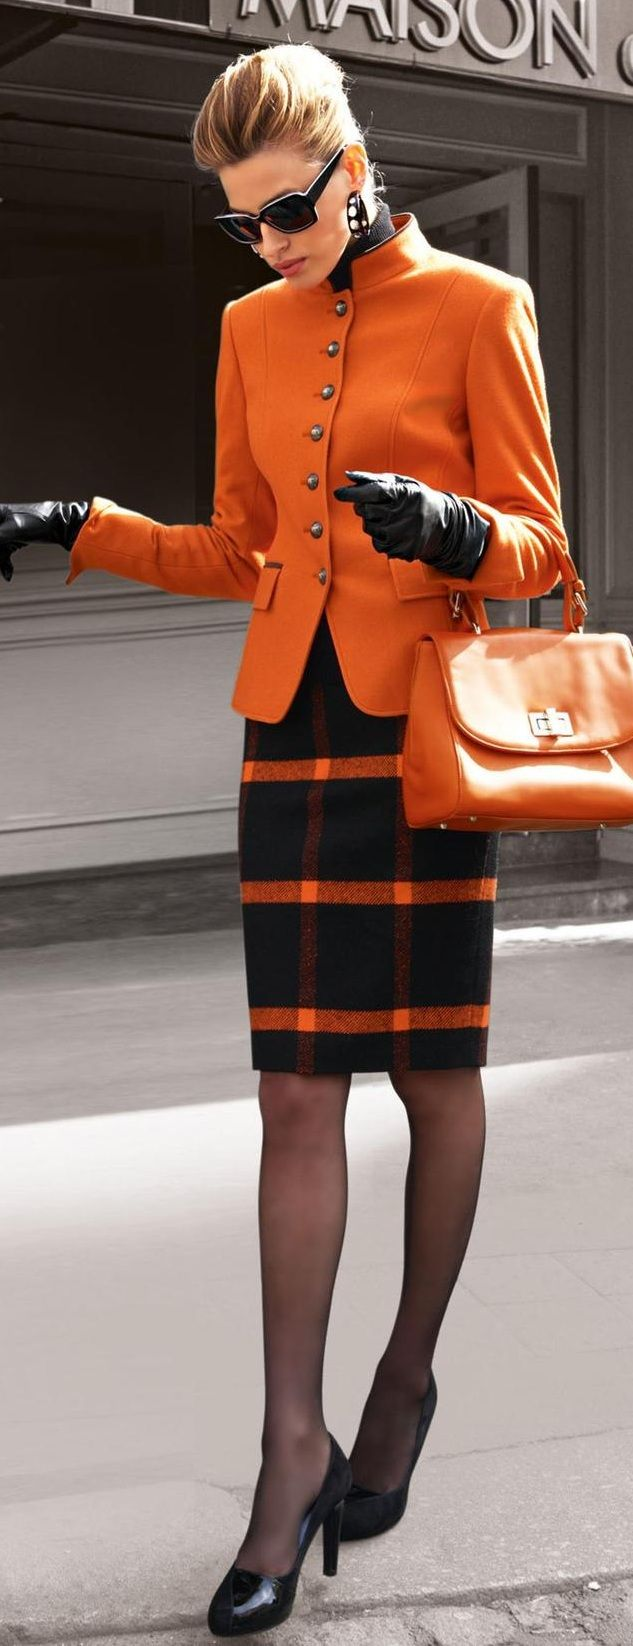 #GetFallReady  Change the orange to red and it's a go - oh, add about 3 more inches to the hemline. Hahaha!